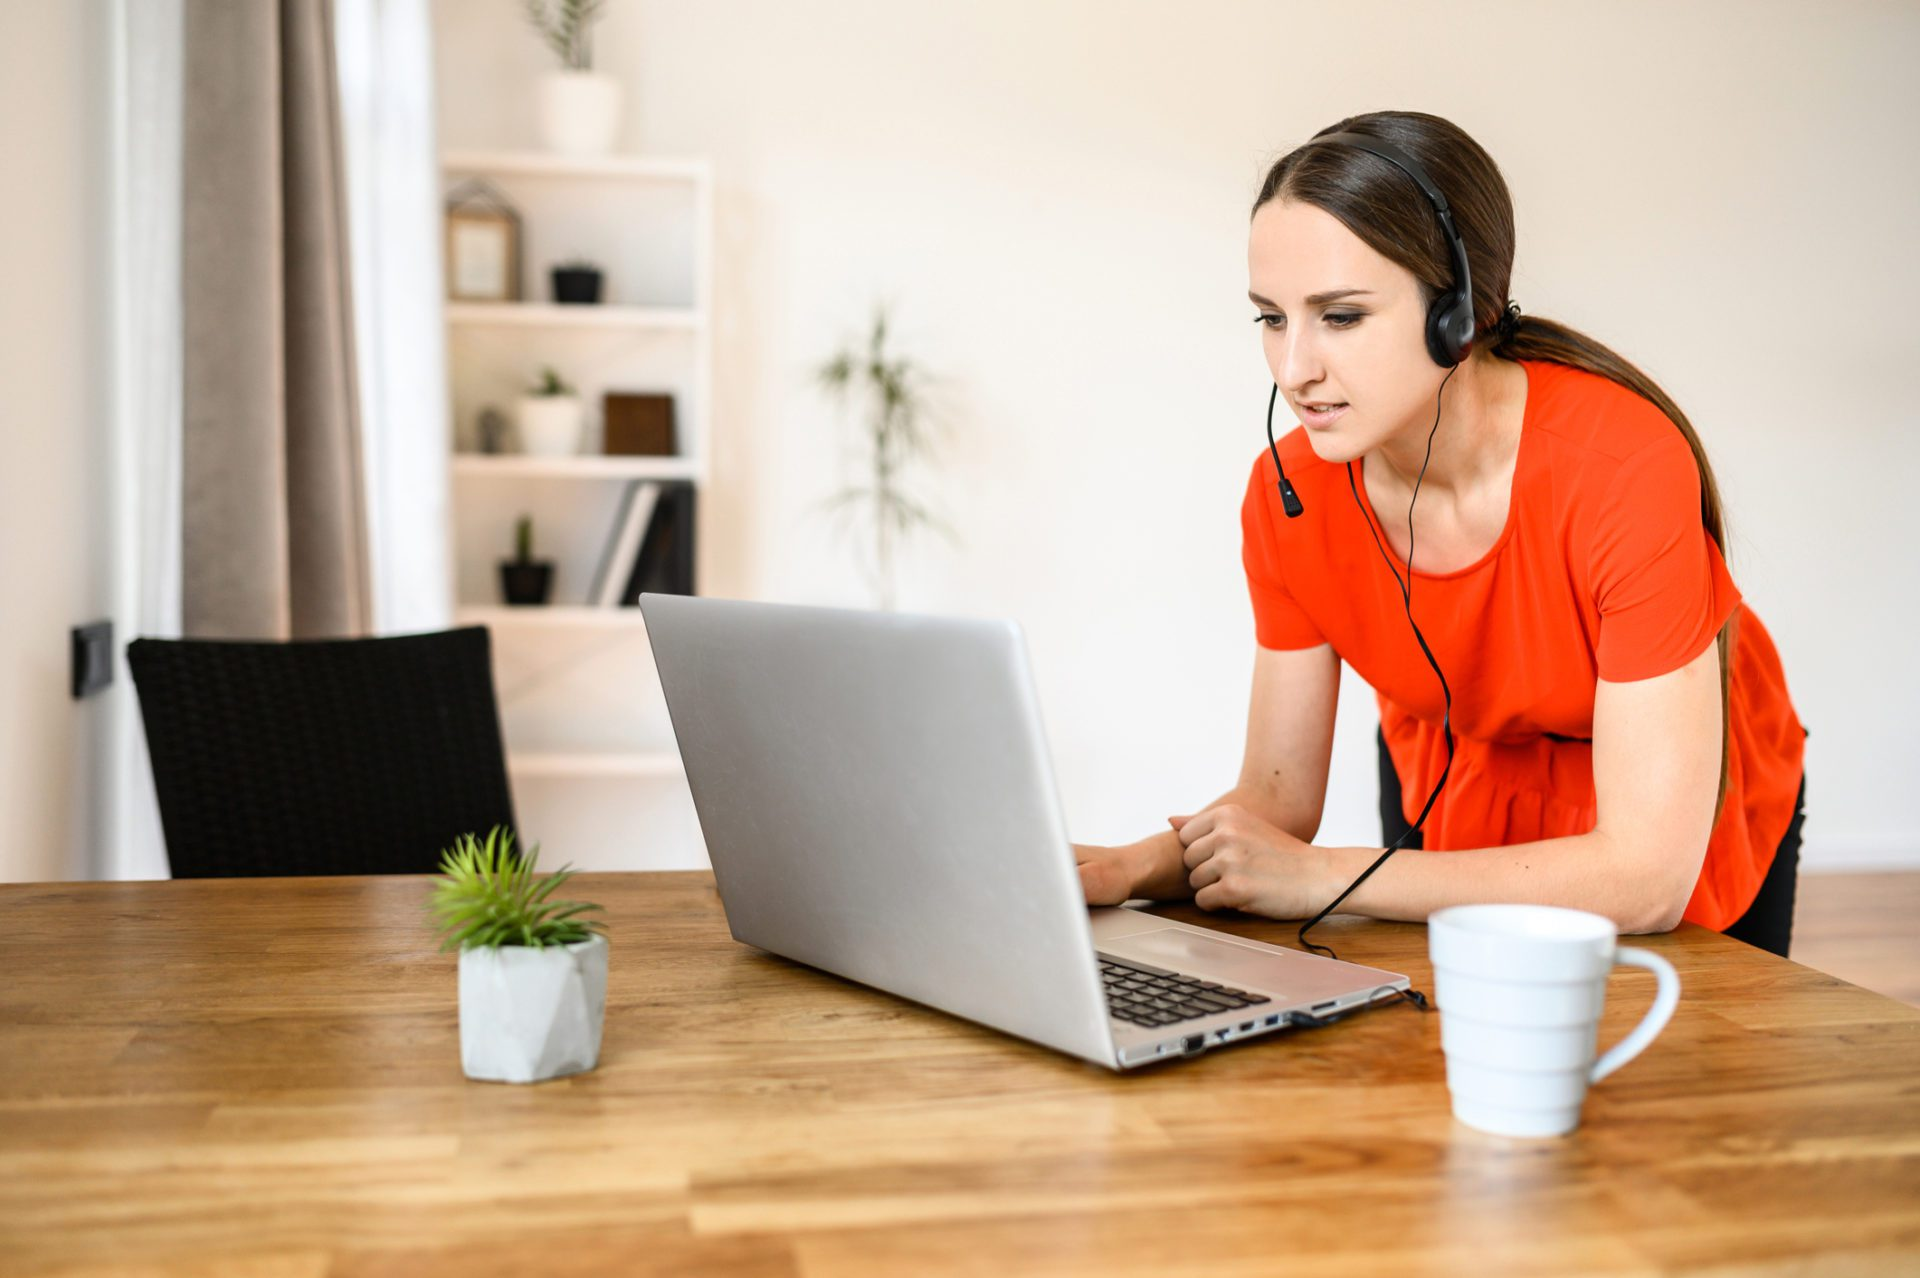 customer service agent stands at table while working remotely